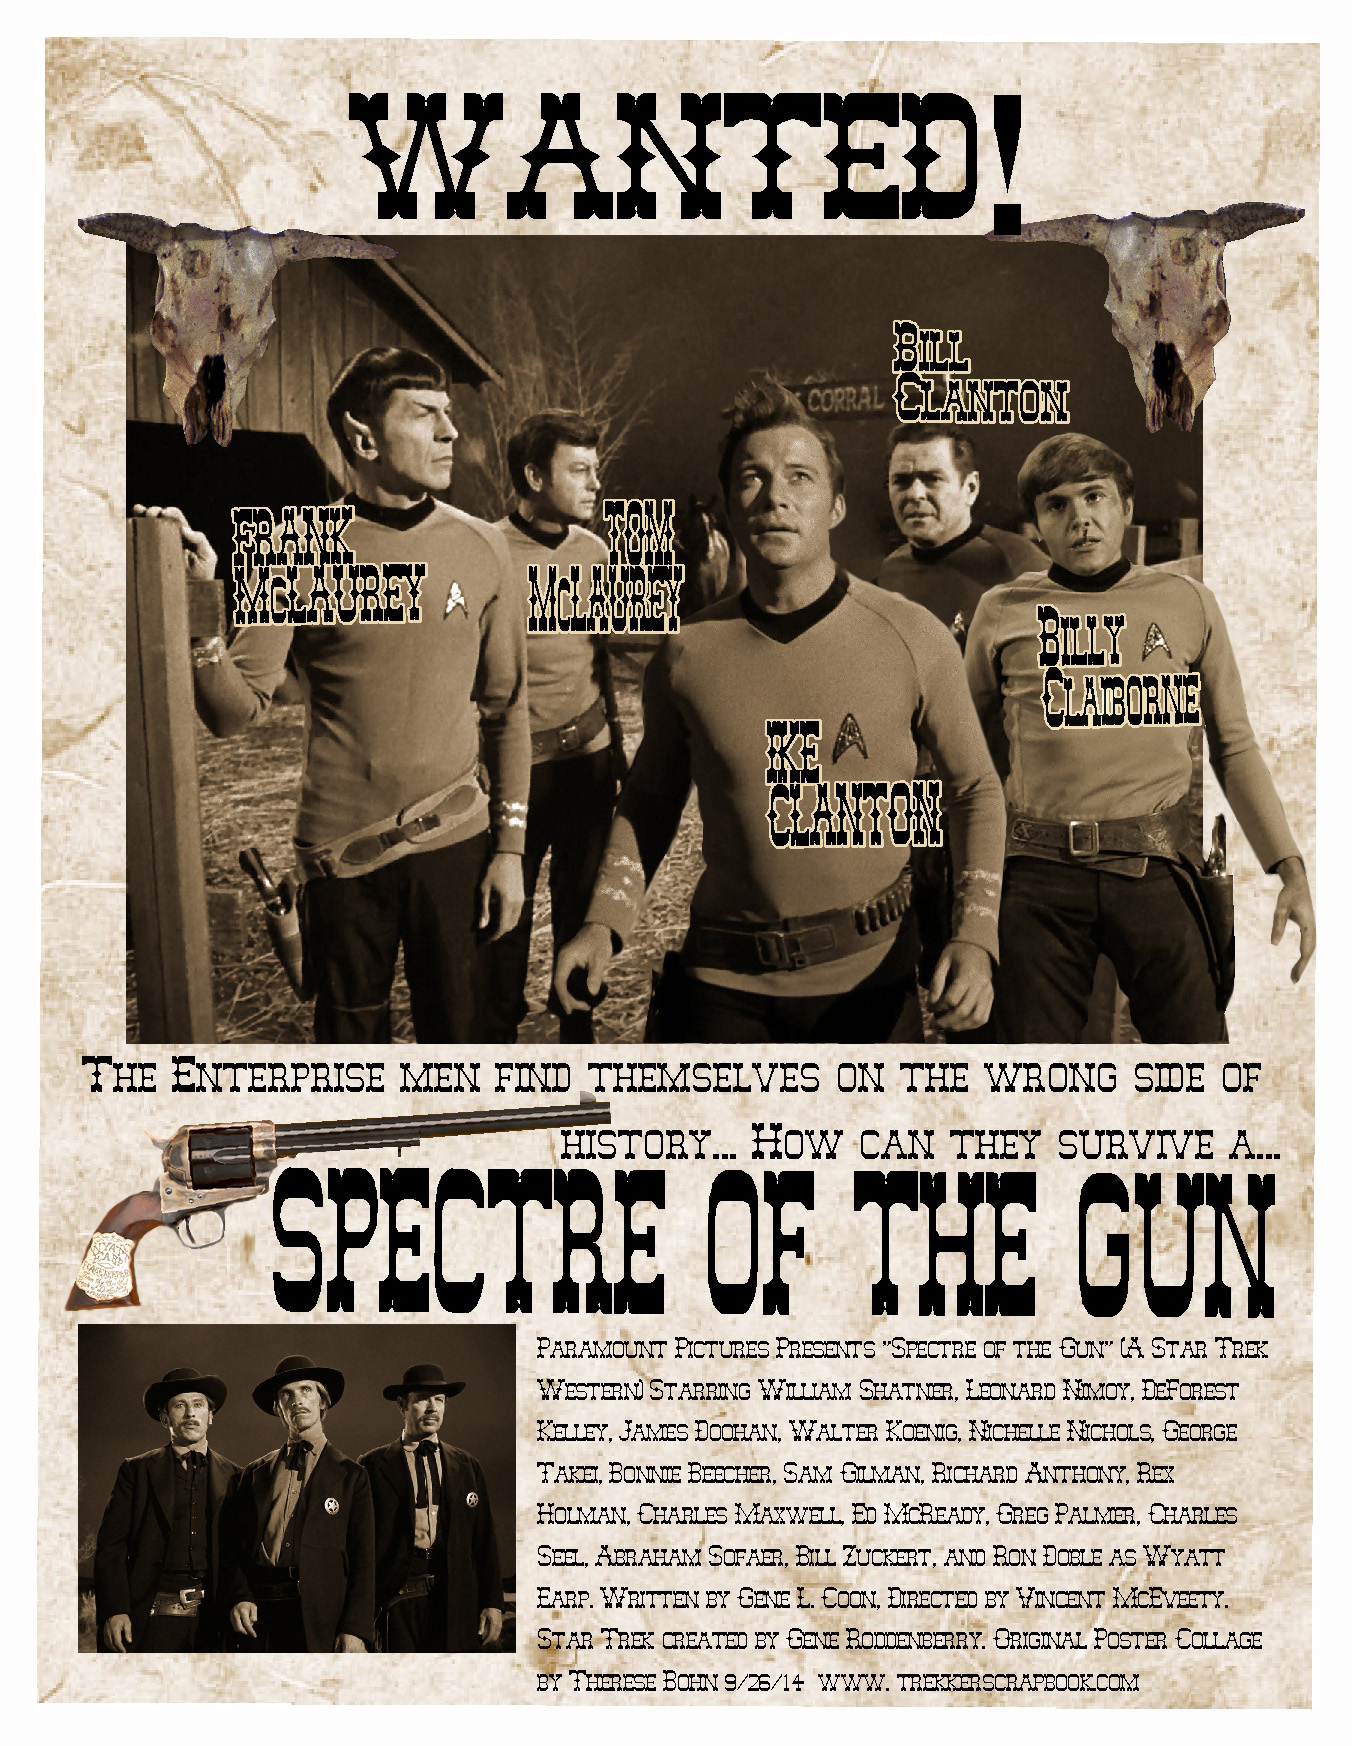 57 Spectre of the Gun